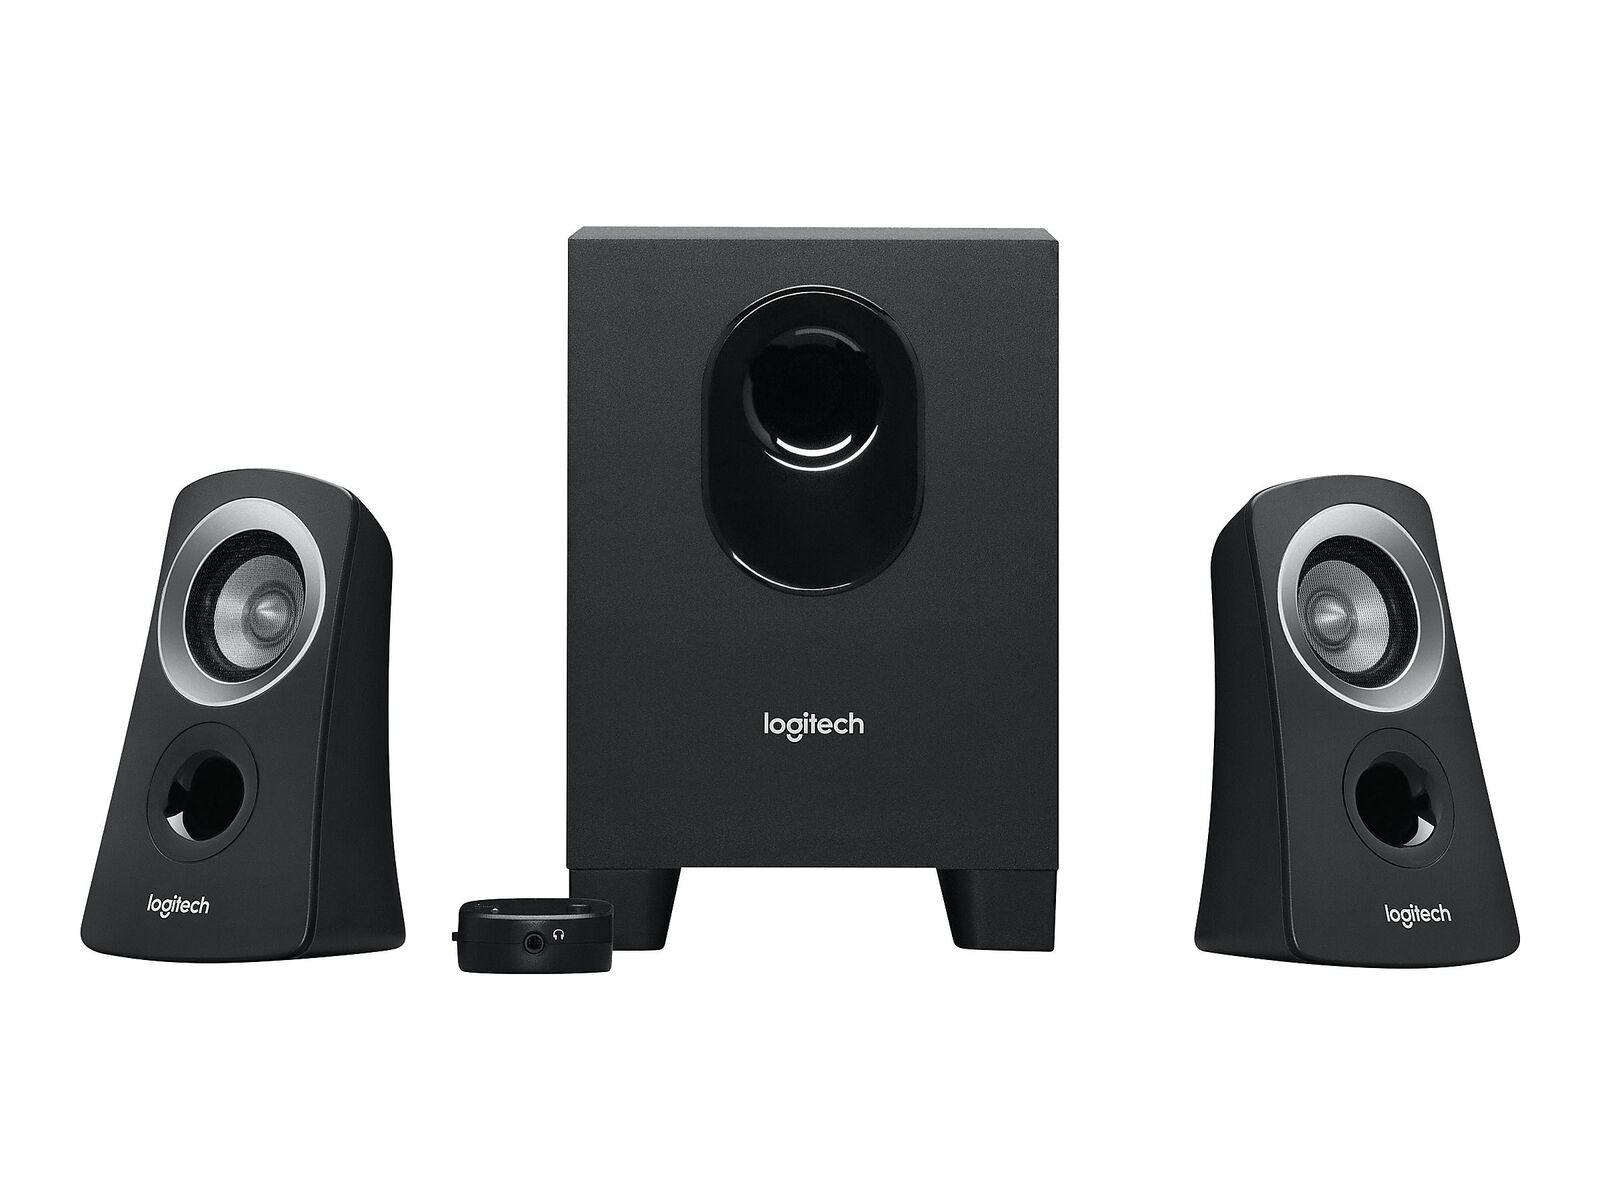 Logitech Z313 Wired Speaker System (980-000382) . Buy it now for 39.99